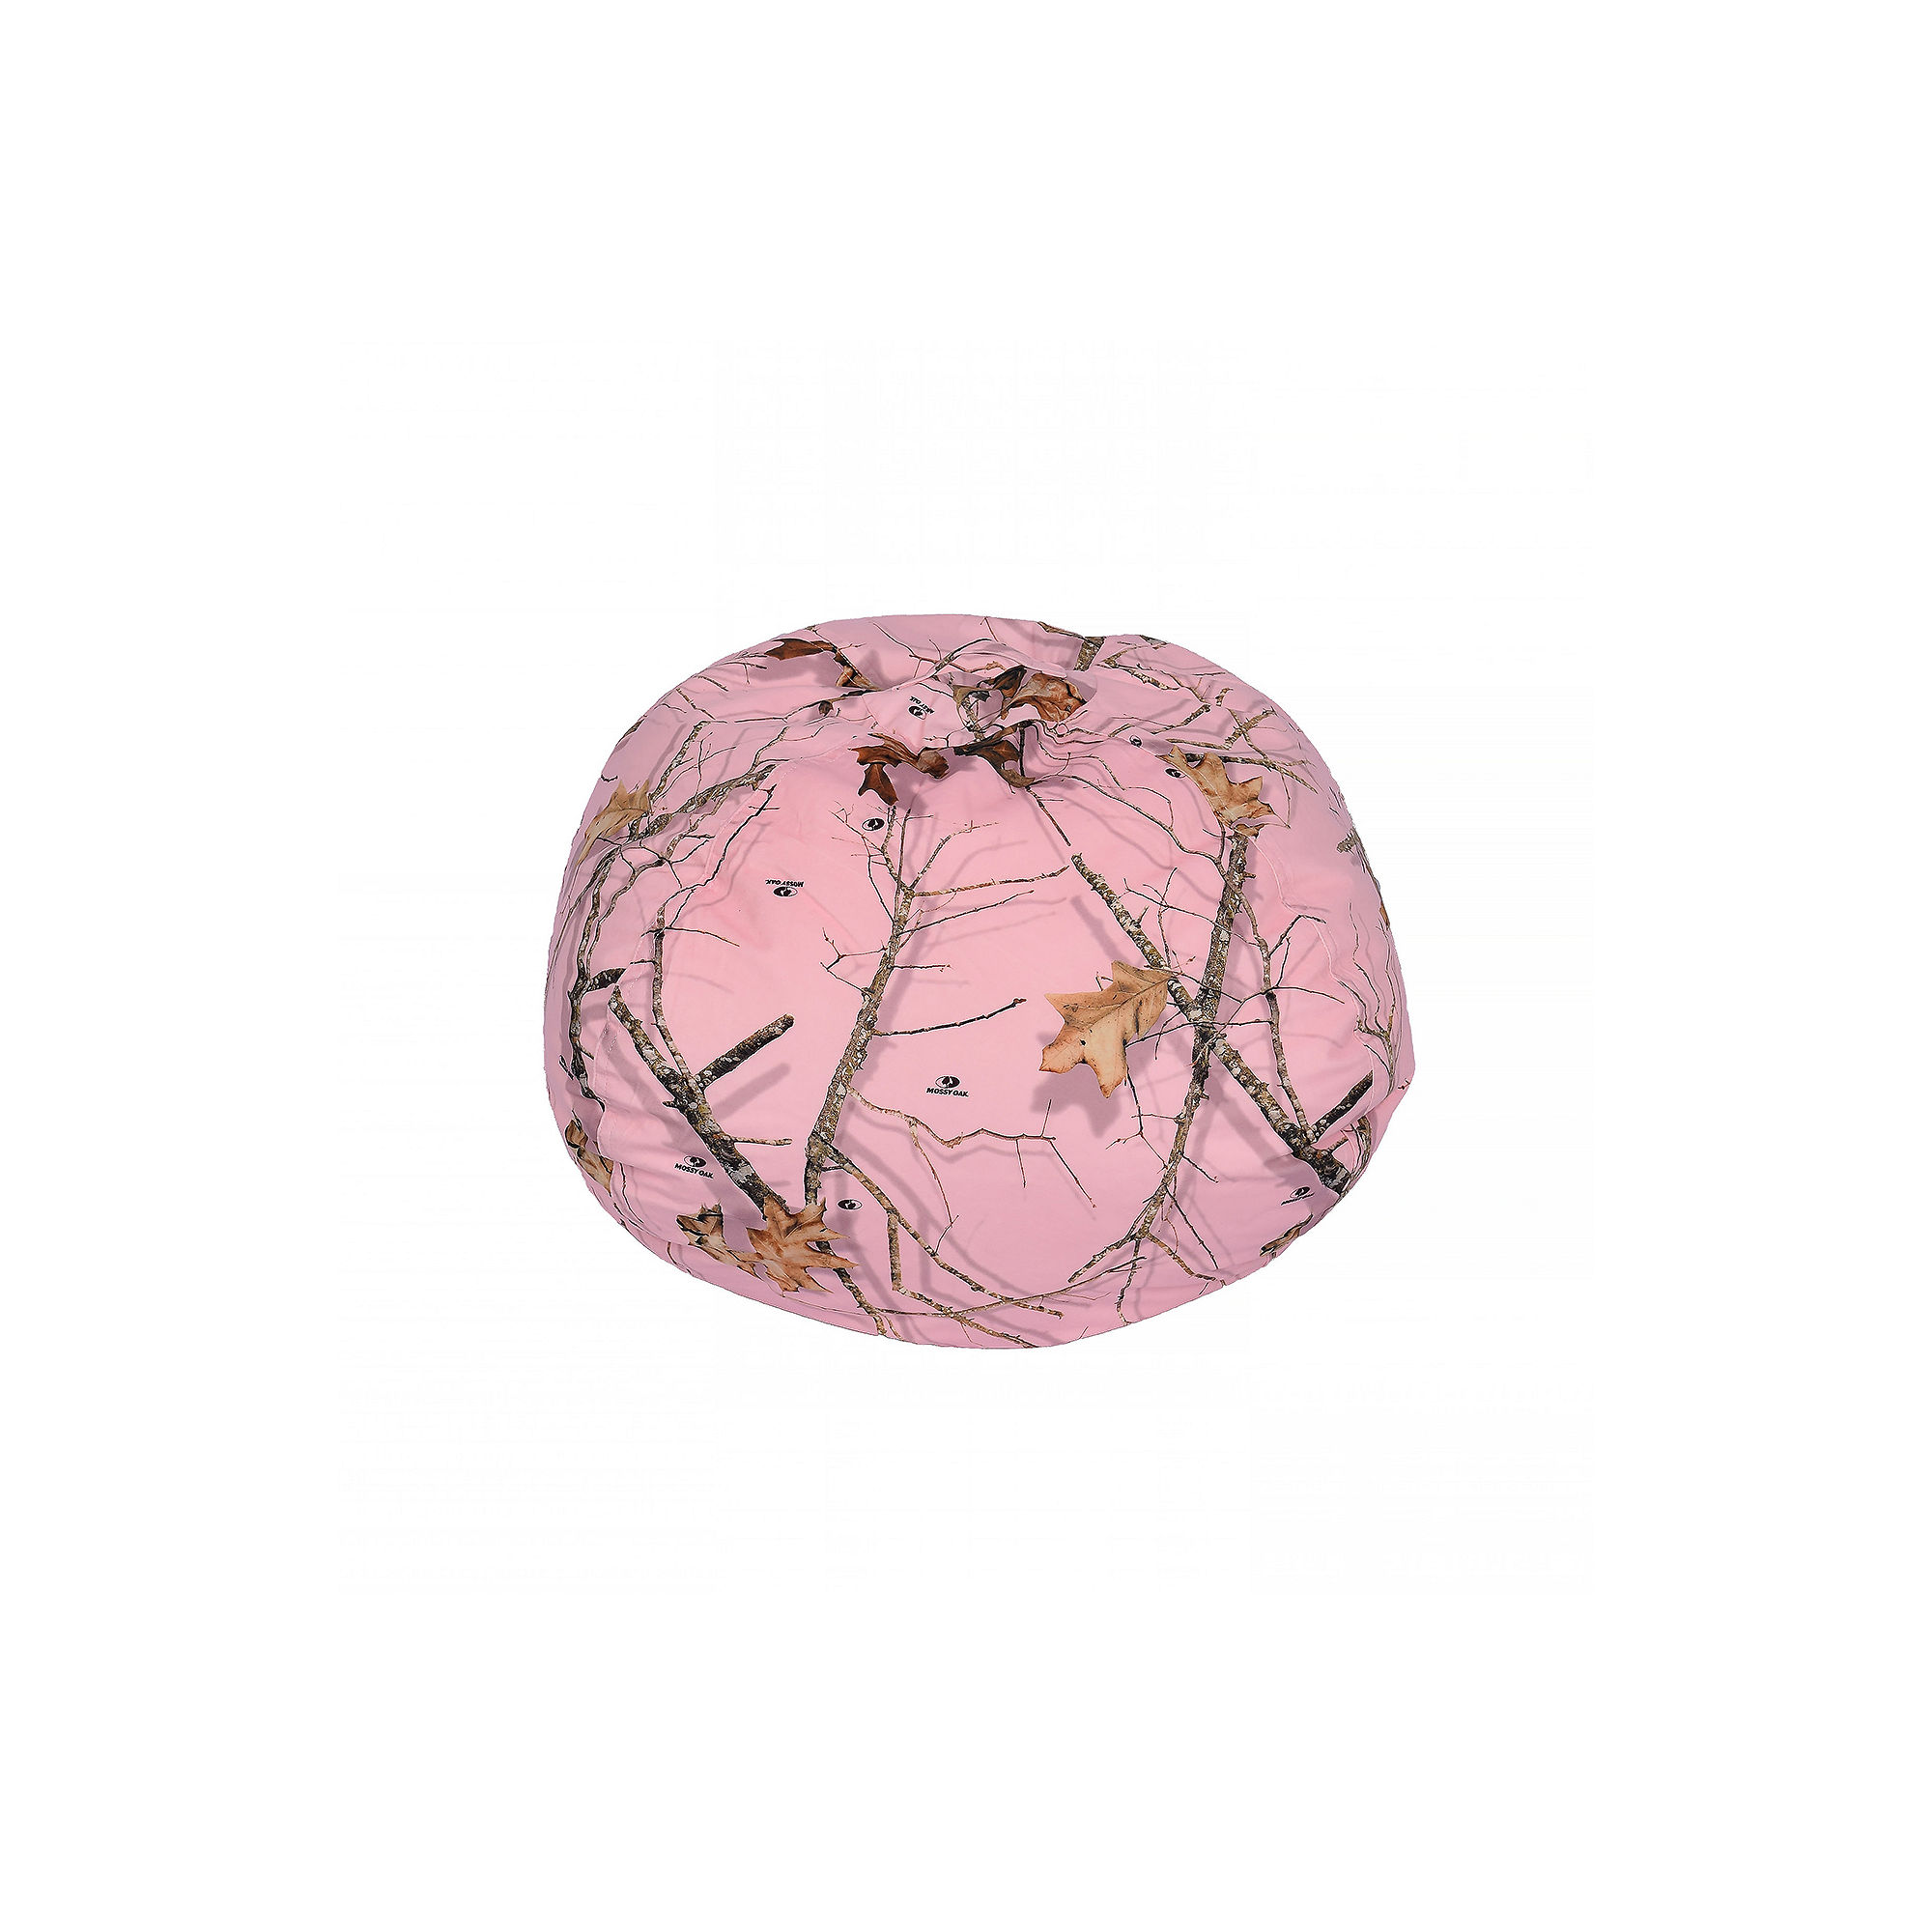 Mossy Oak Pink Bean Bag - Medium